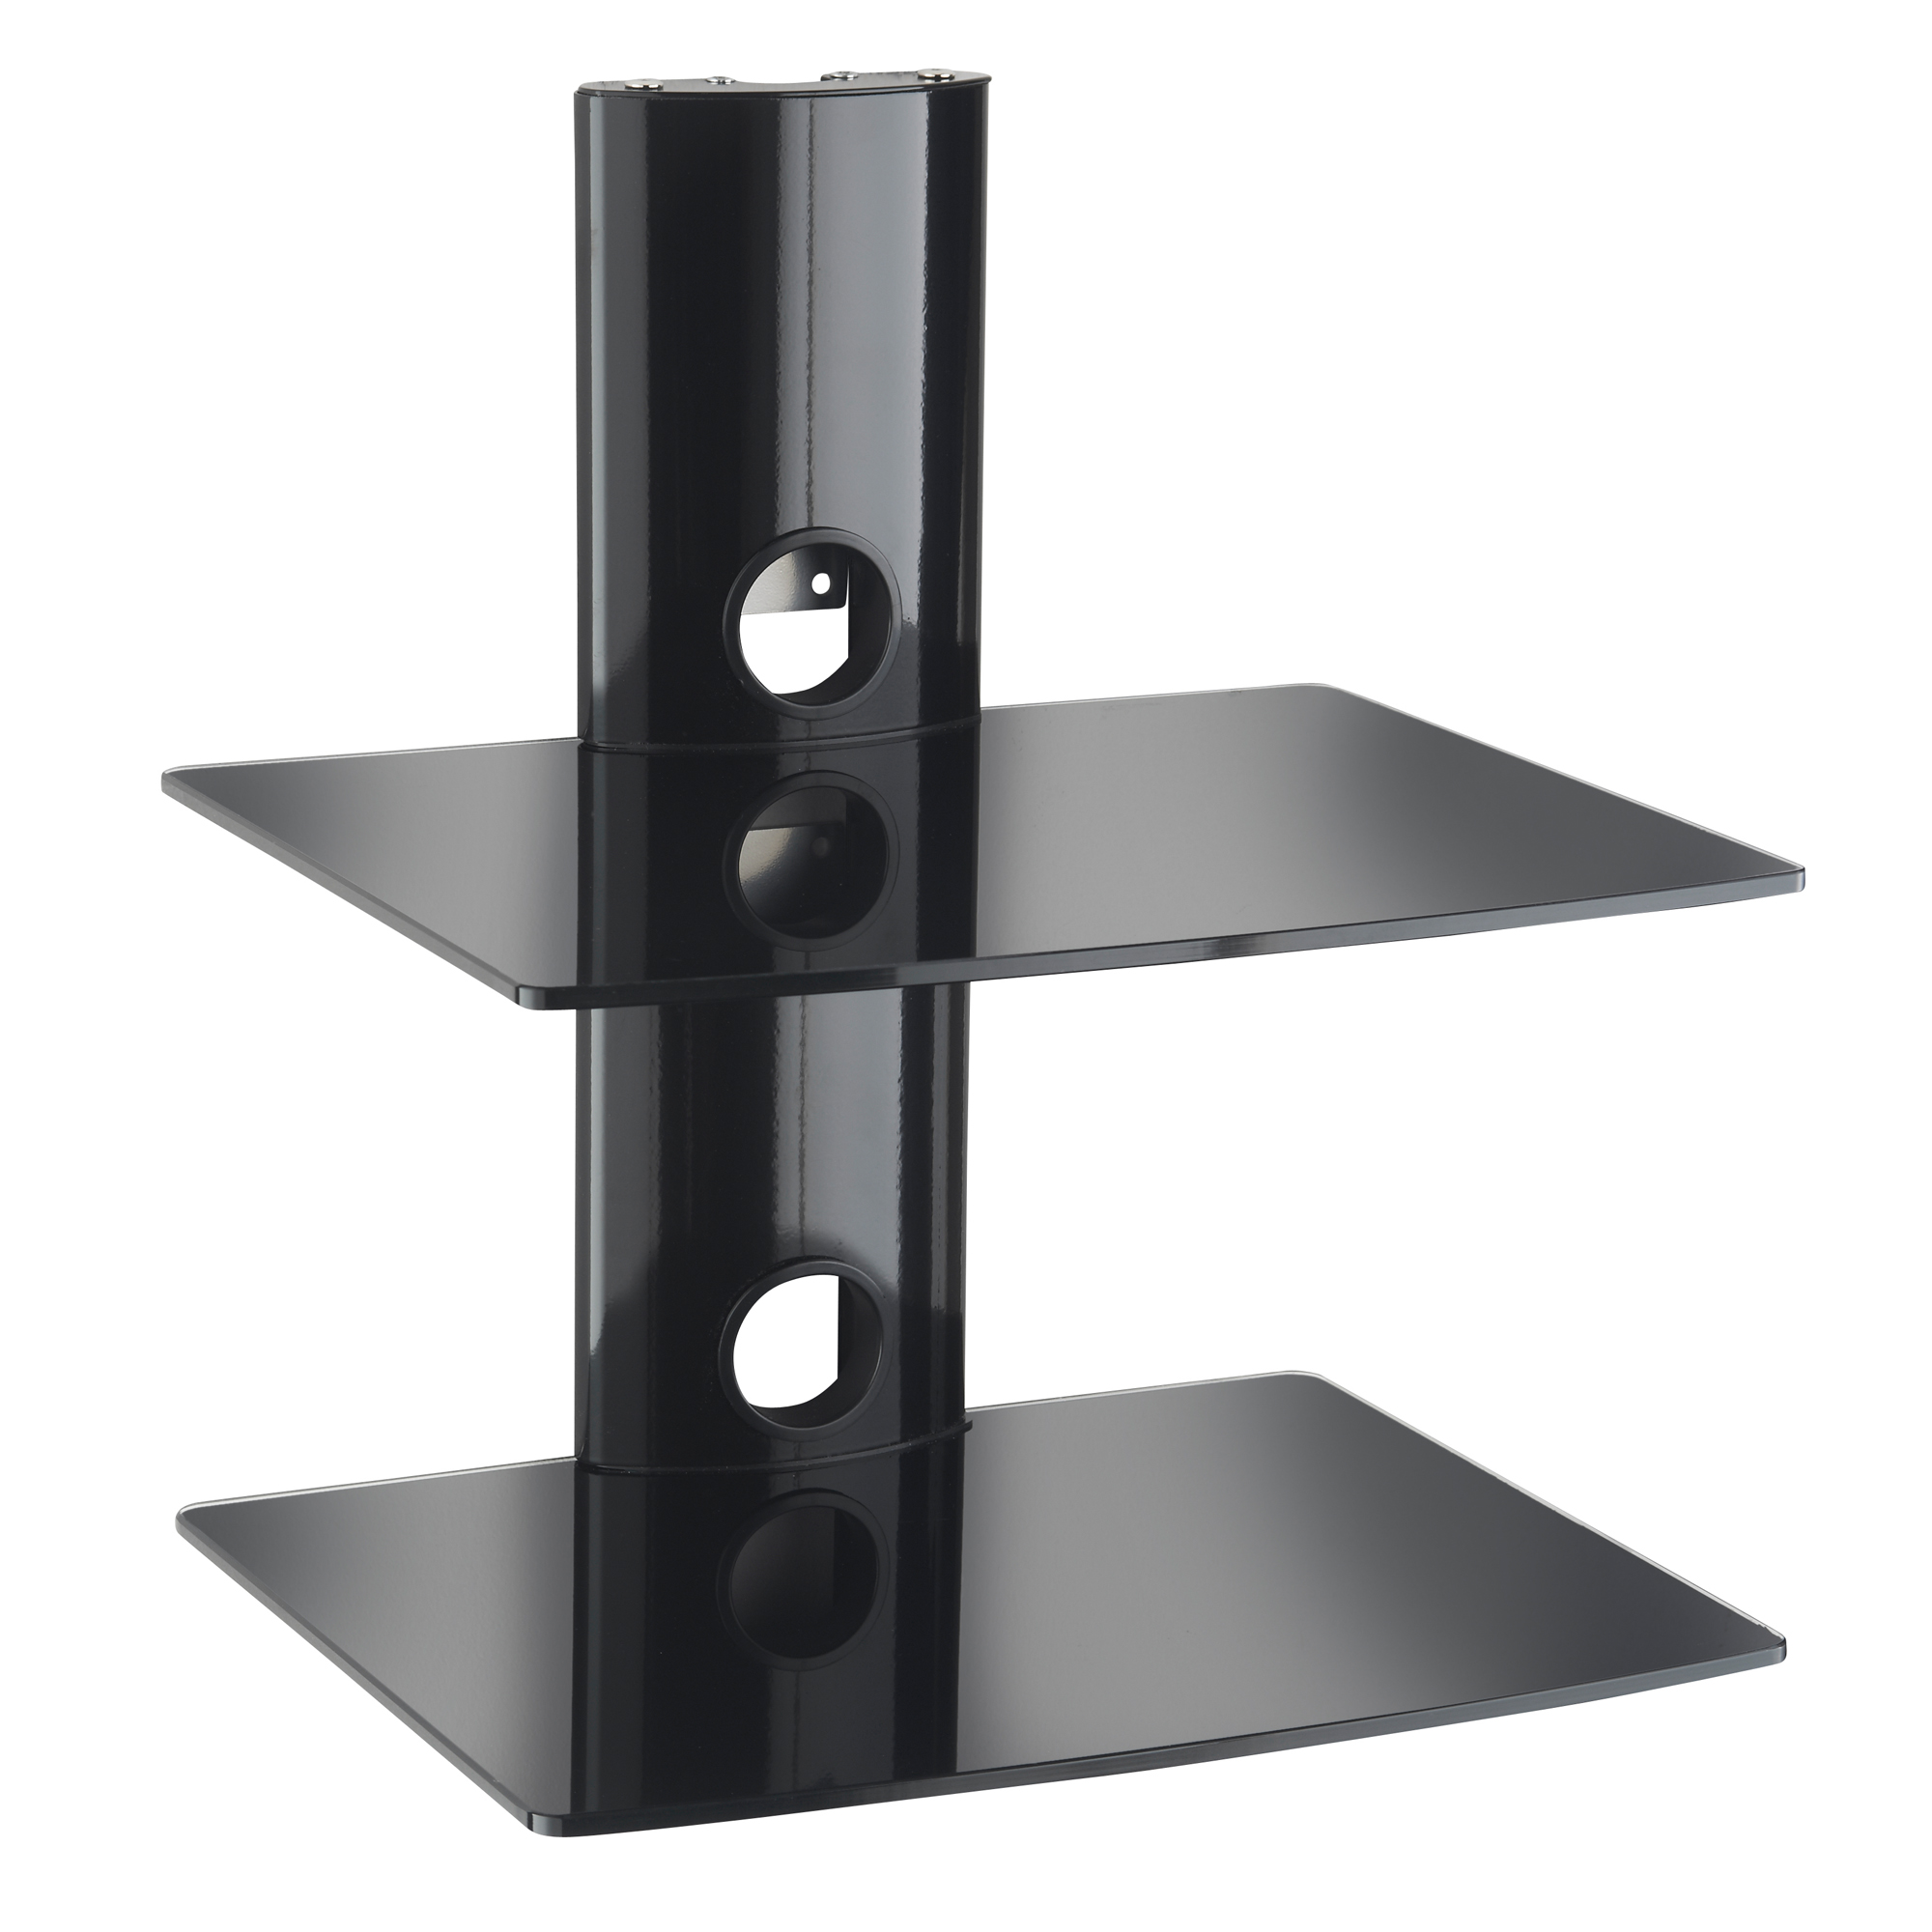 vonhaus floating shelves wall mounted bracket for dvd sky box black shelf instructions sentinel glass mount blu ray player ikea white television table stand sneaker storage ideas